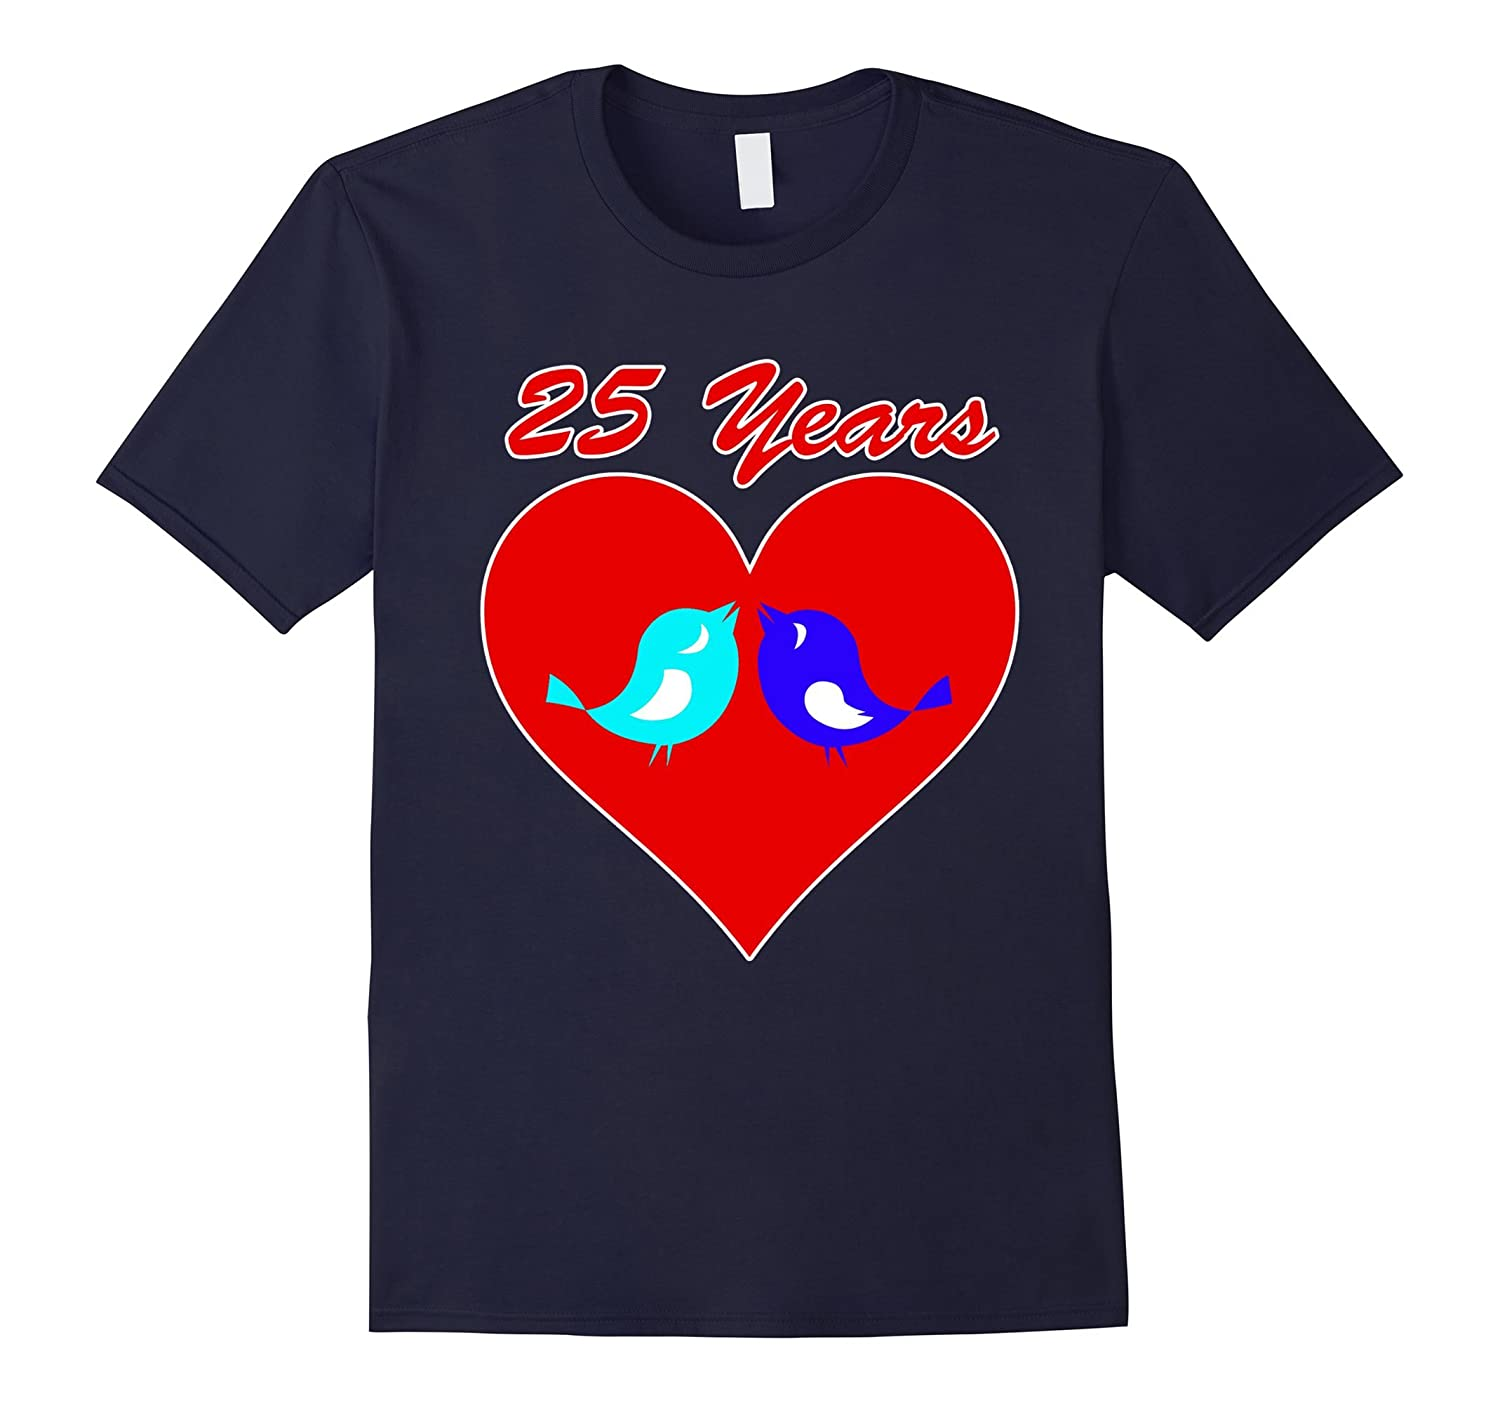 25th Wedding Anniversary T-Shirt Love Birds Celebrate Heart-BN